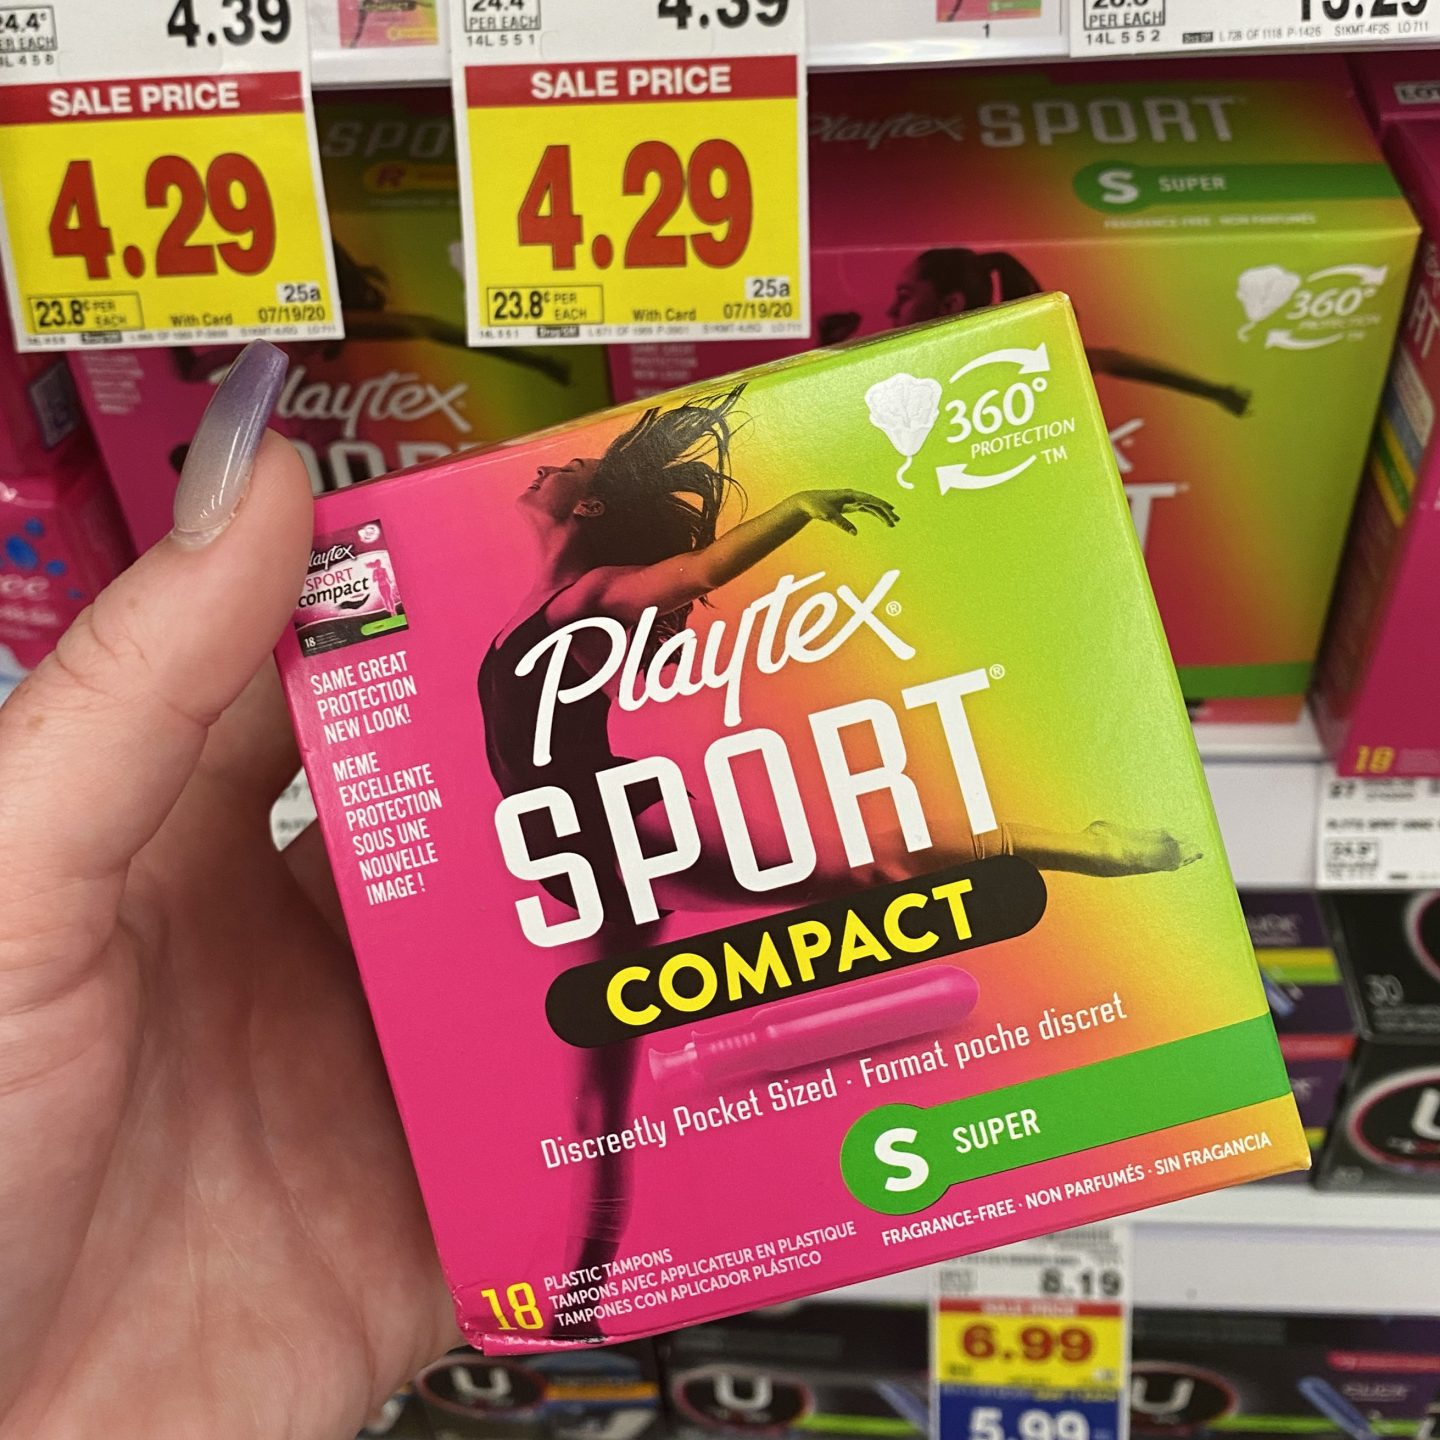 kroger coupon deal playtex sport compact tampons sale